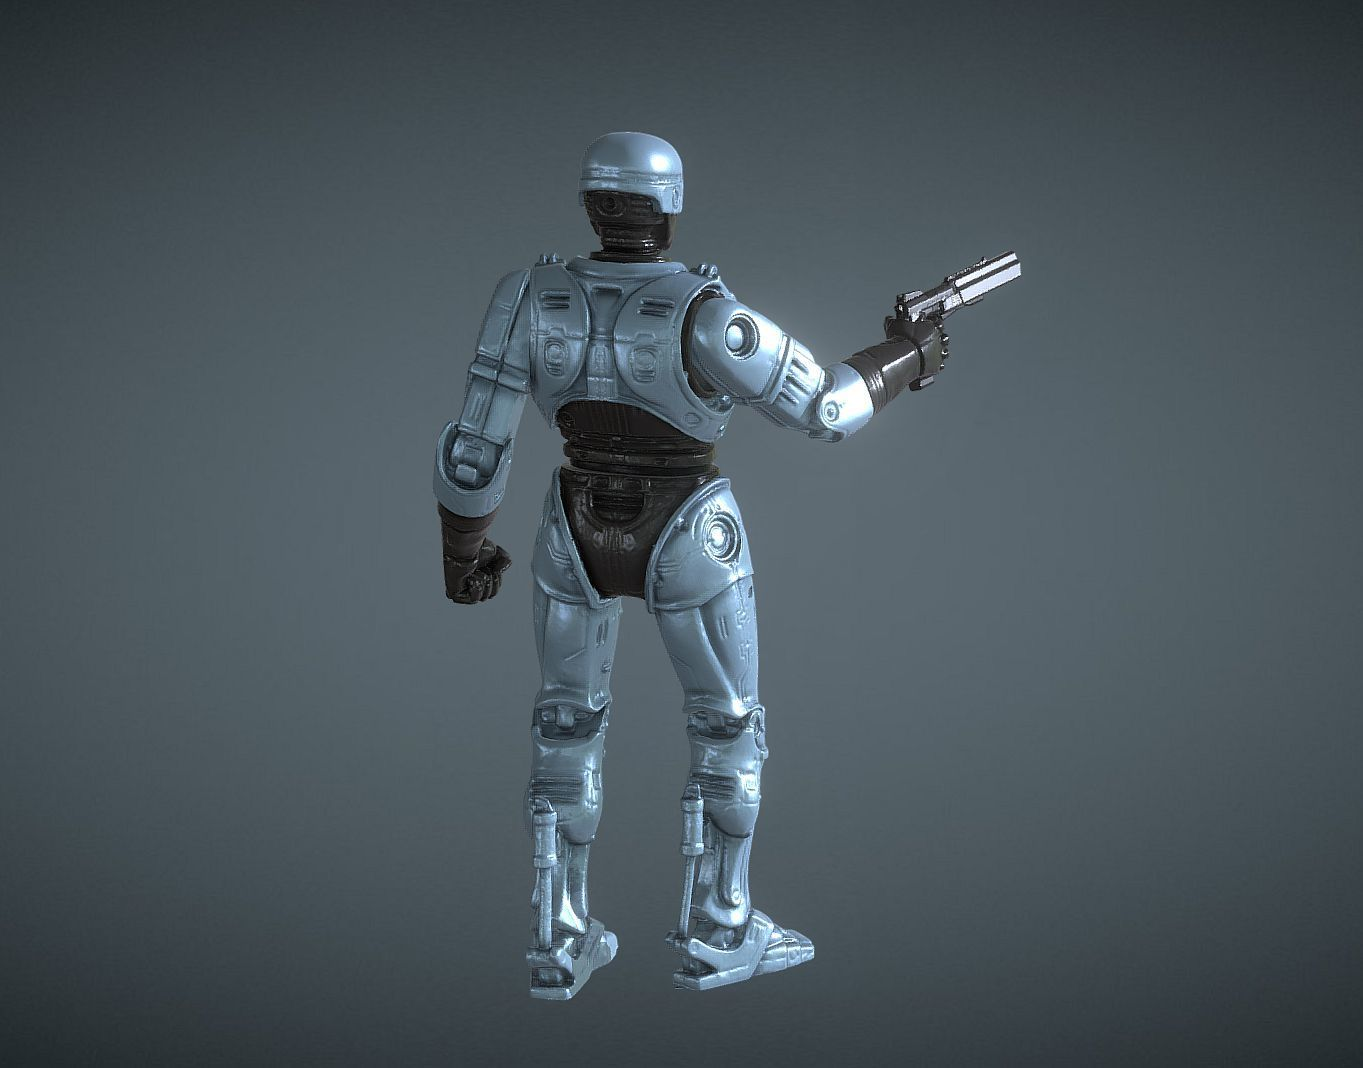 CAPTURE_004.jpg Download STL file ROBOCOP INSPIRITED FIGURE • Design to 3D print, Masterclip